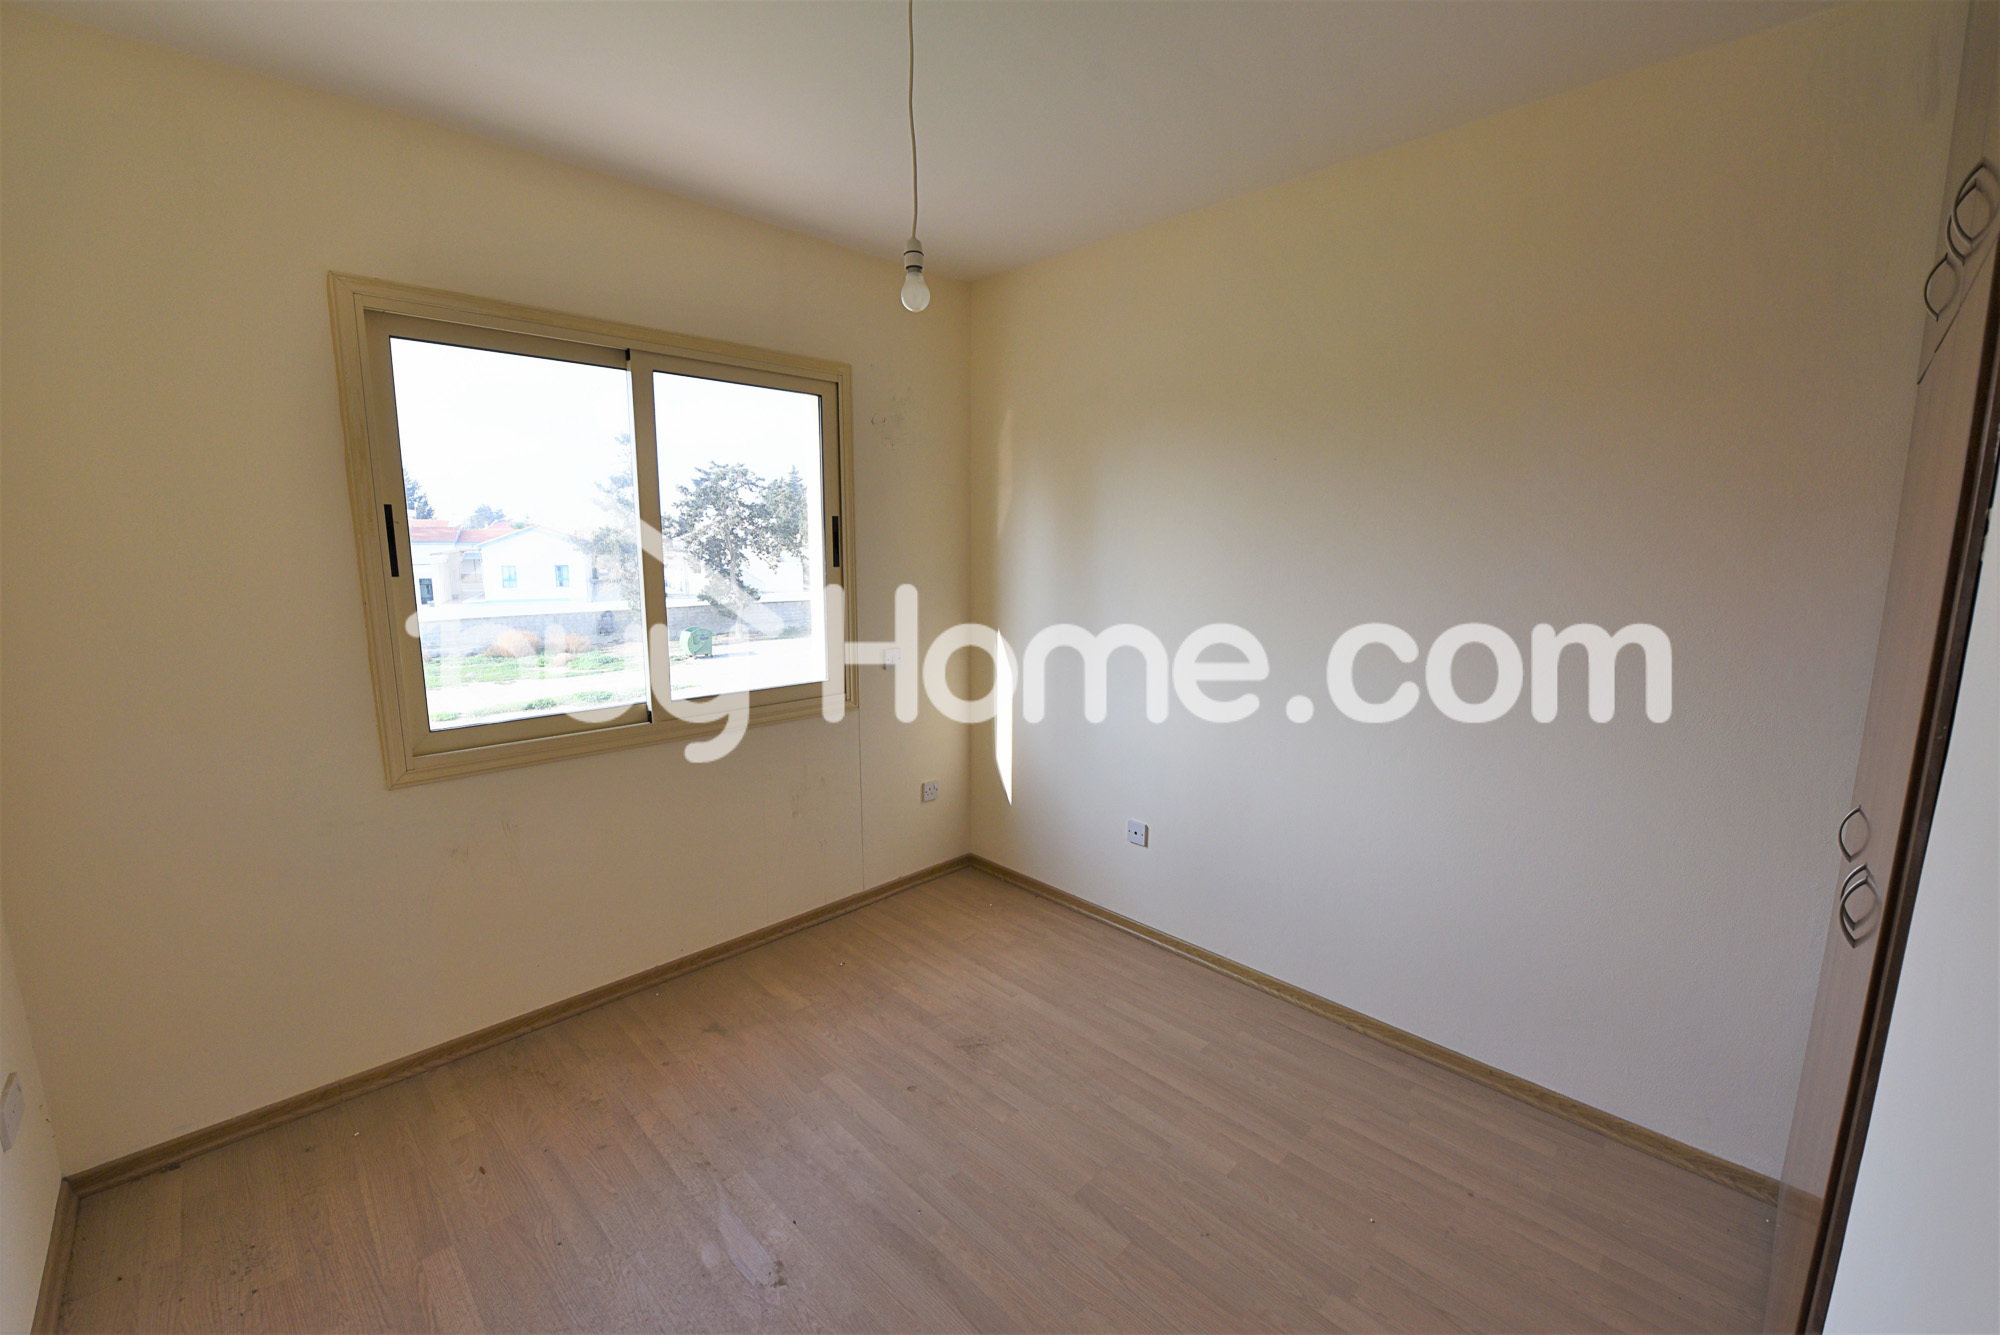 2 Bedroom Apartment with large balcony | BuyHome